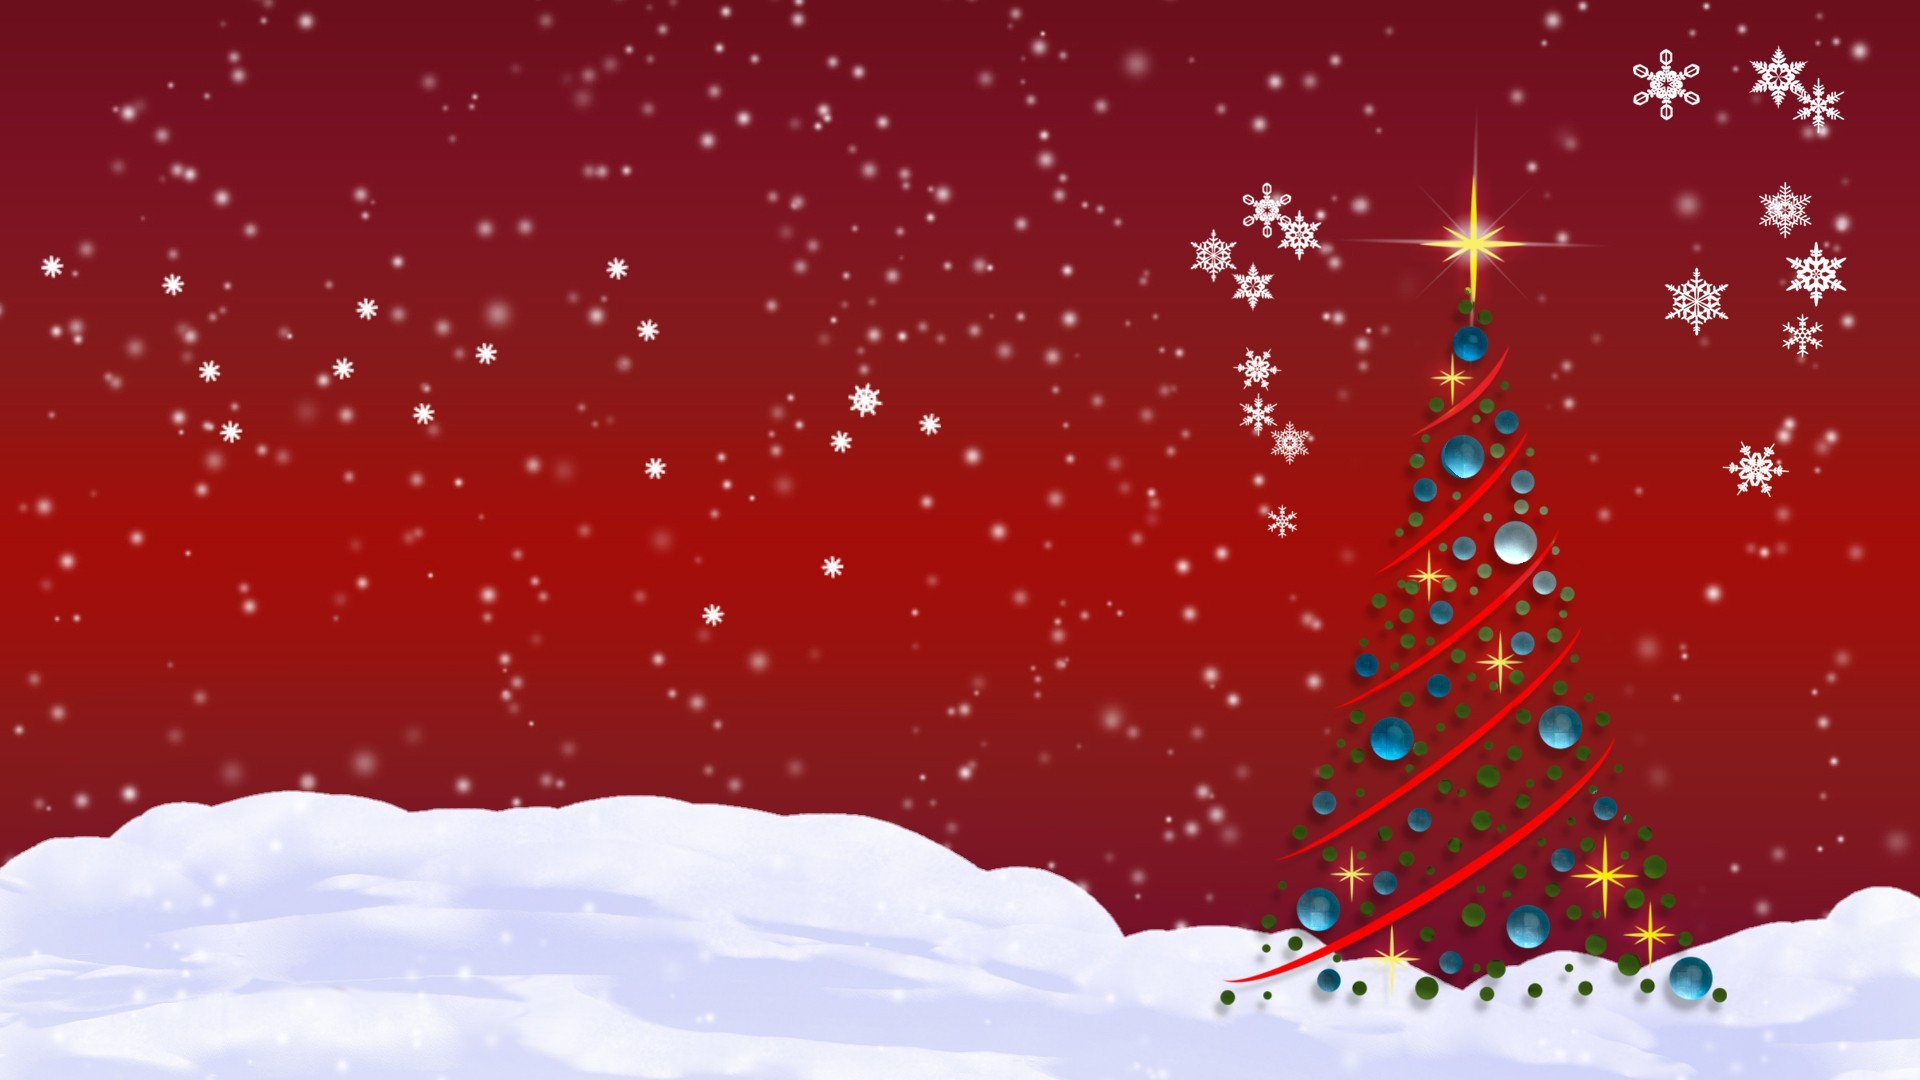 Top 24 Best Free Hd Christmas Wallpapers: Christmas Wallpaper Screen Saver (65+ Images